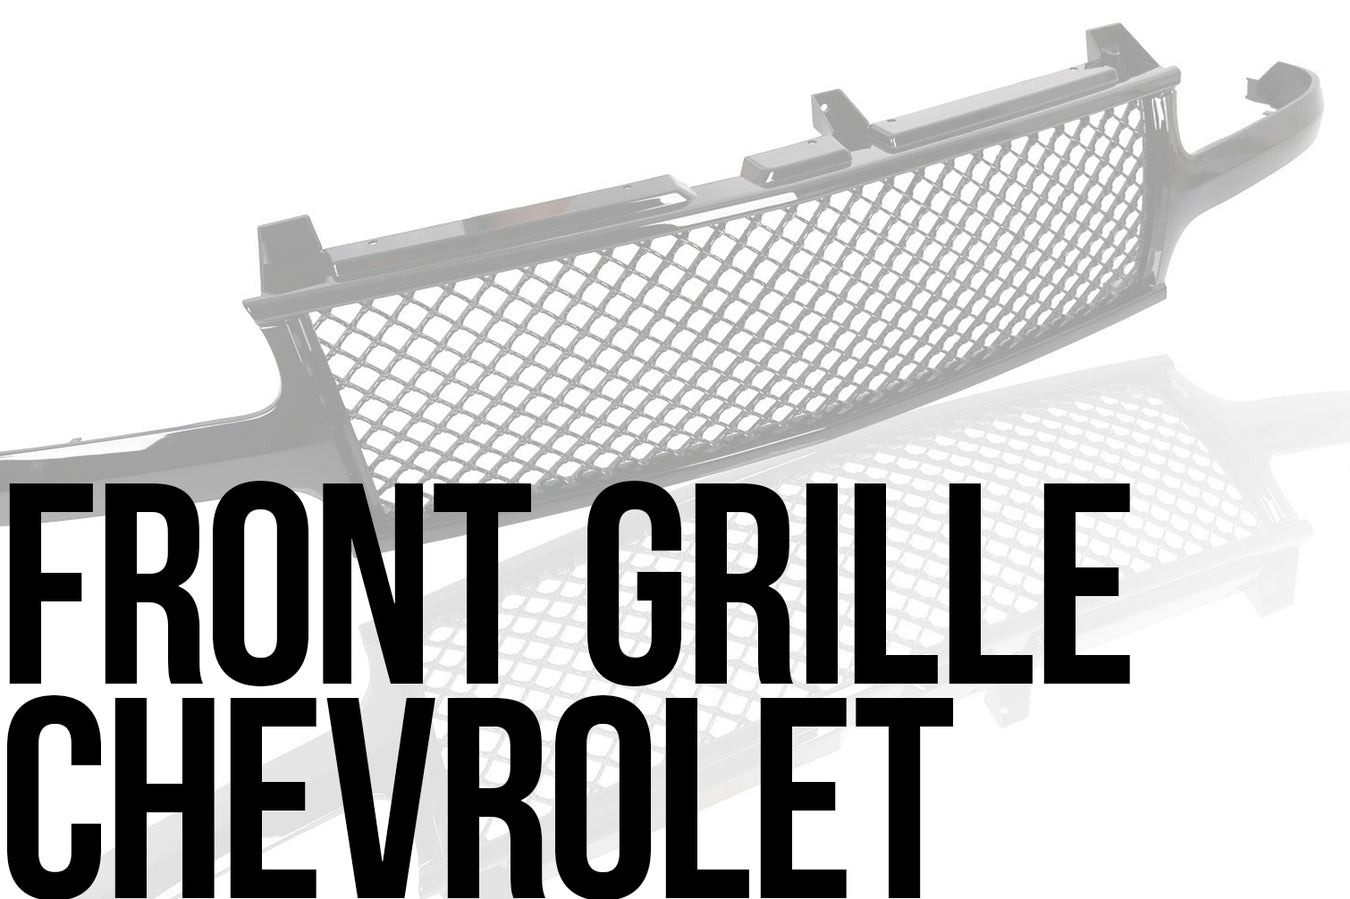 Front Grille Chevrolet